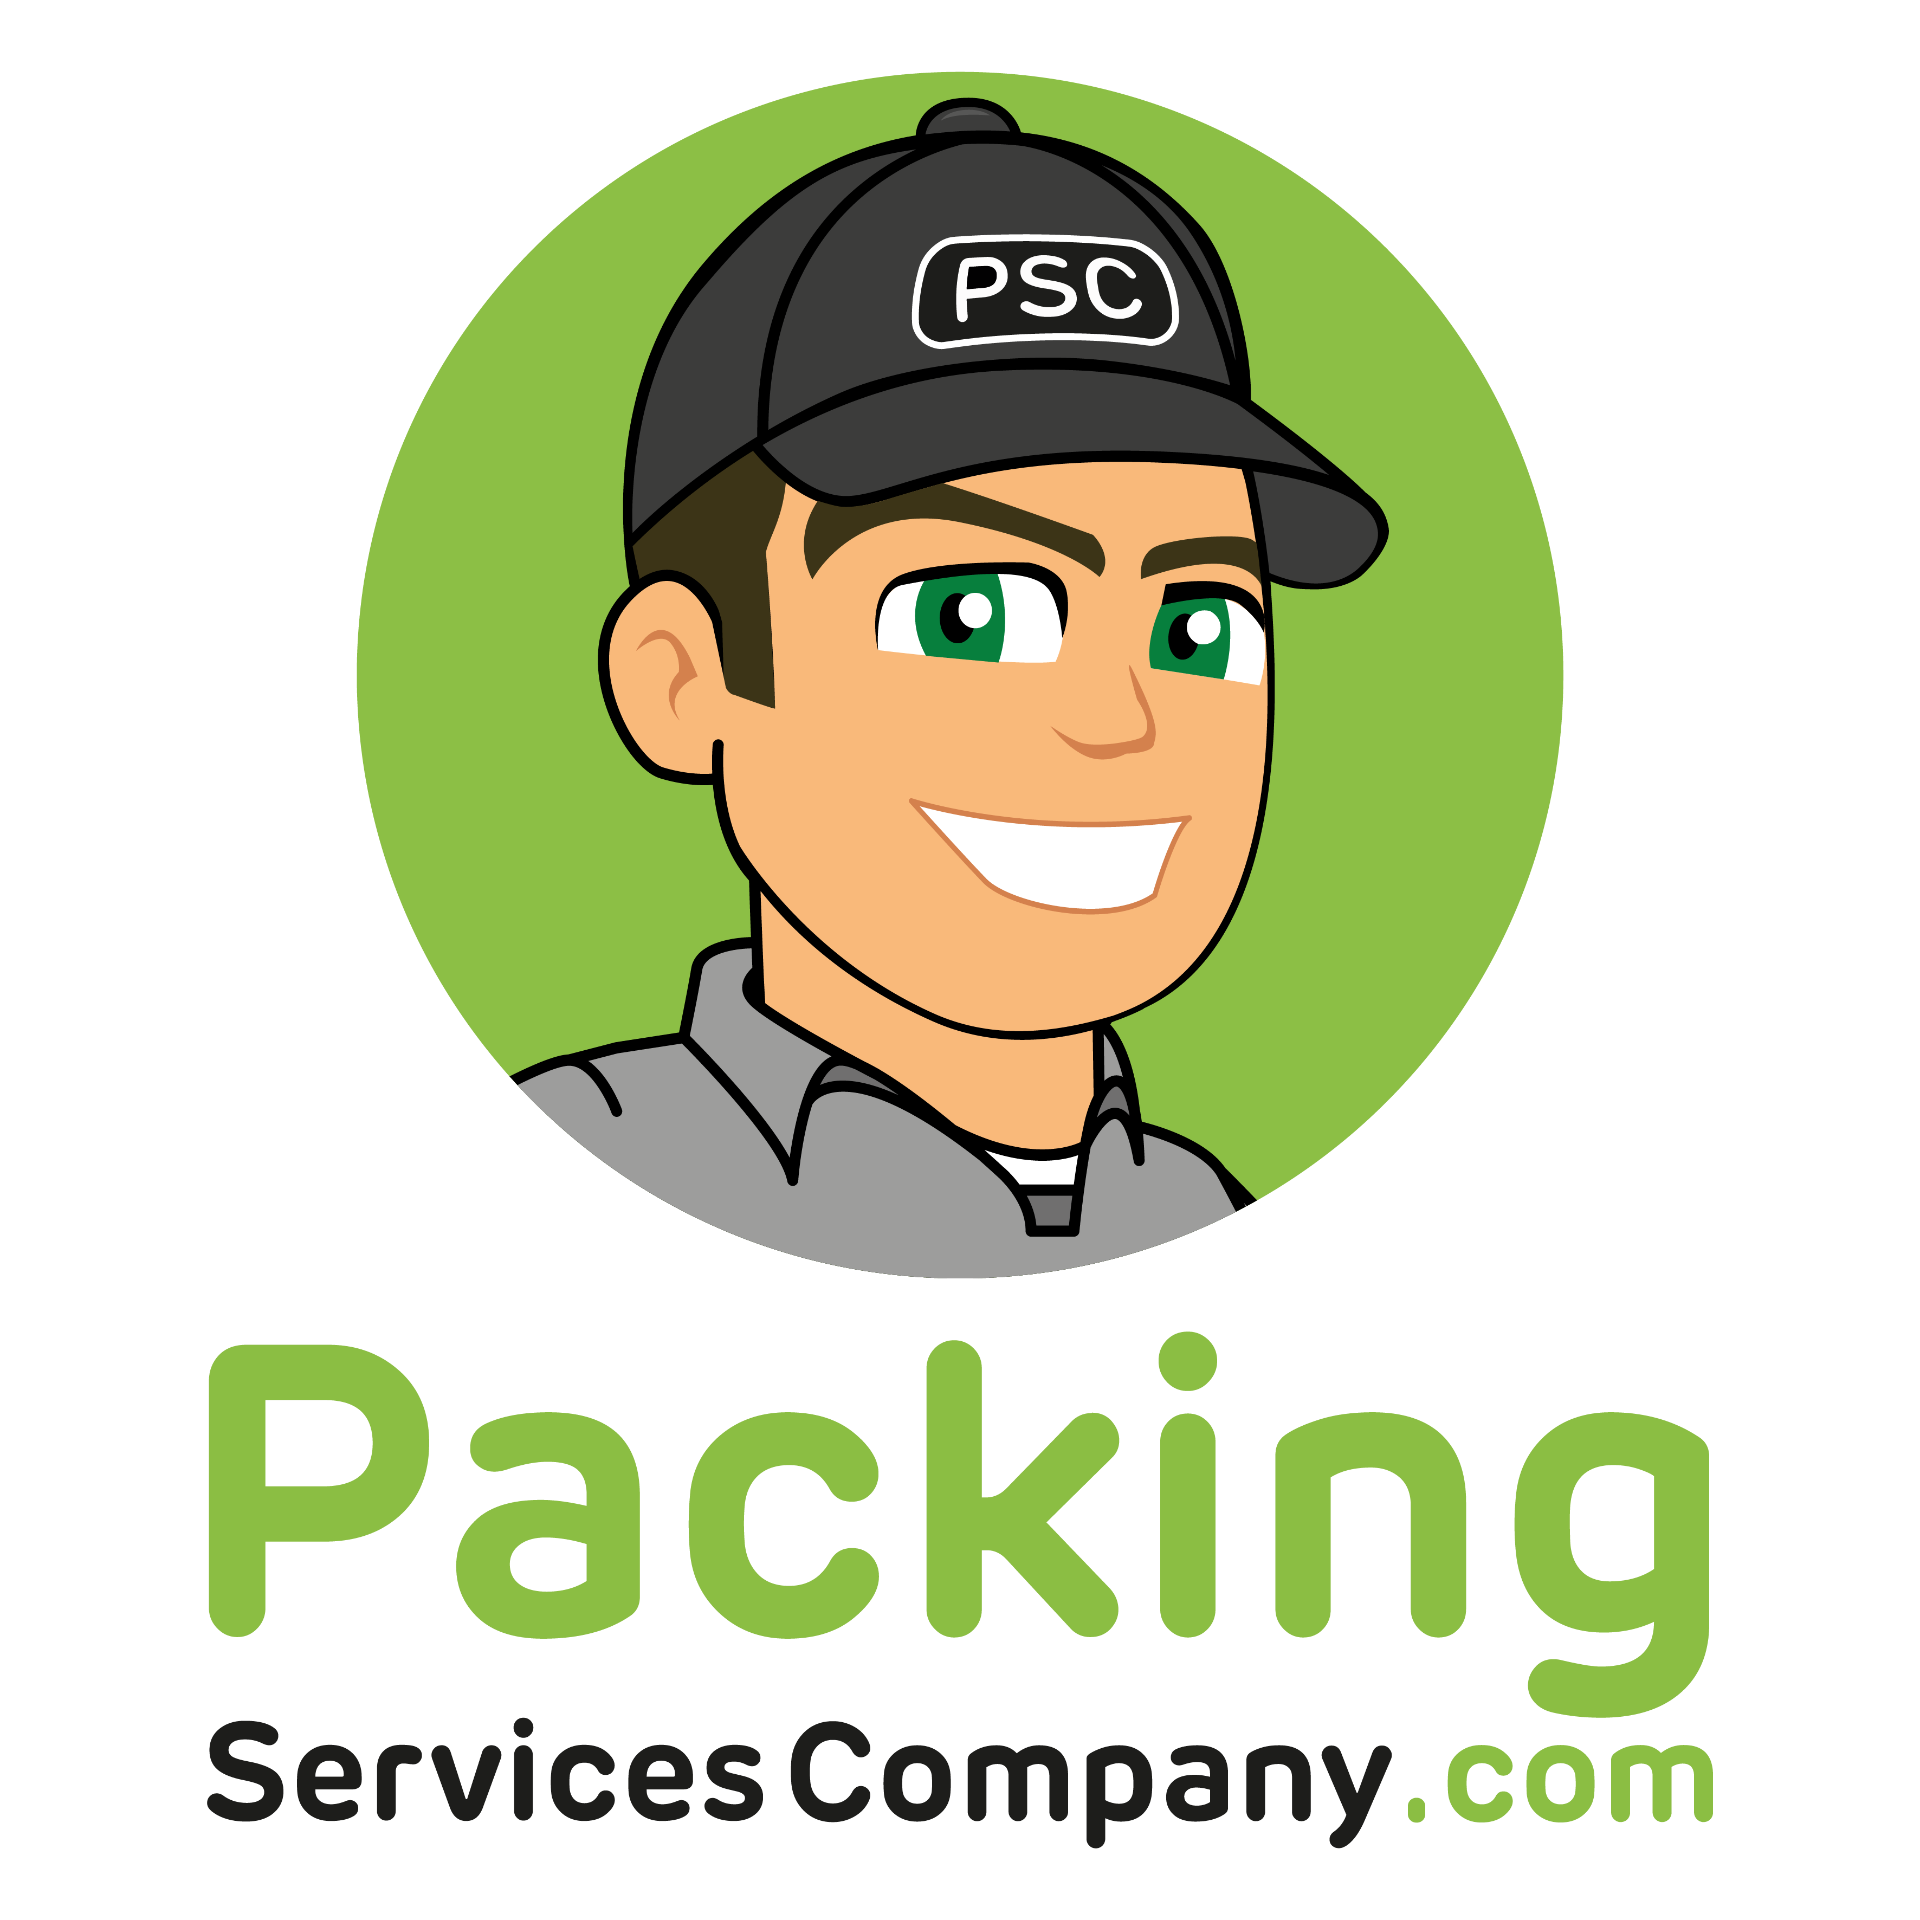 Packing Services Company SAS